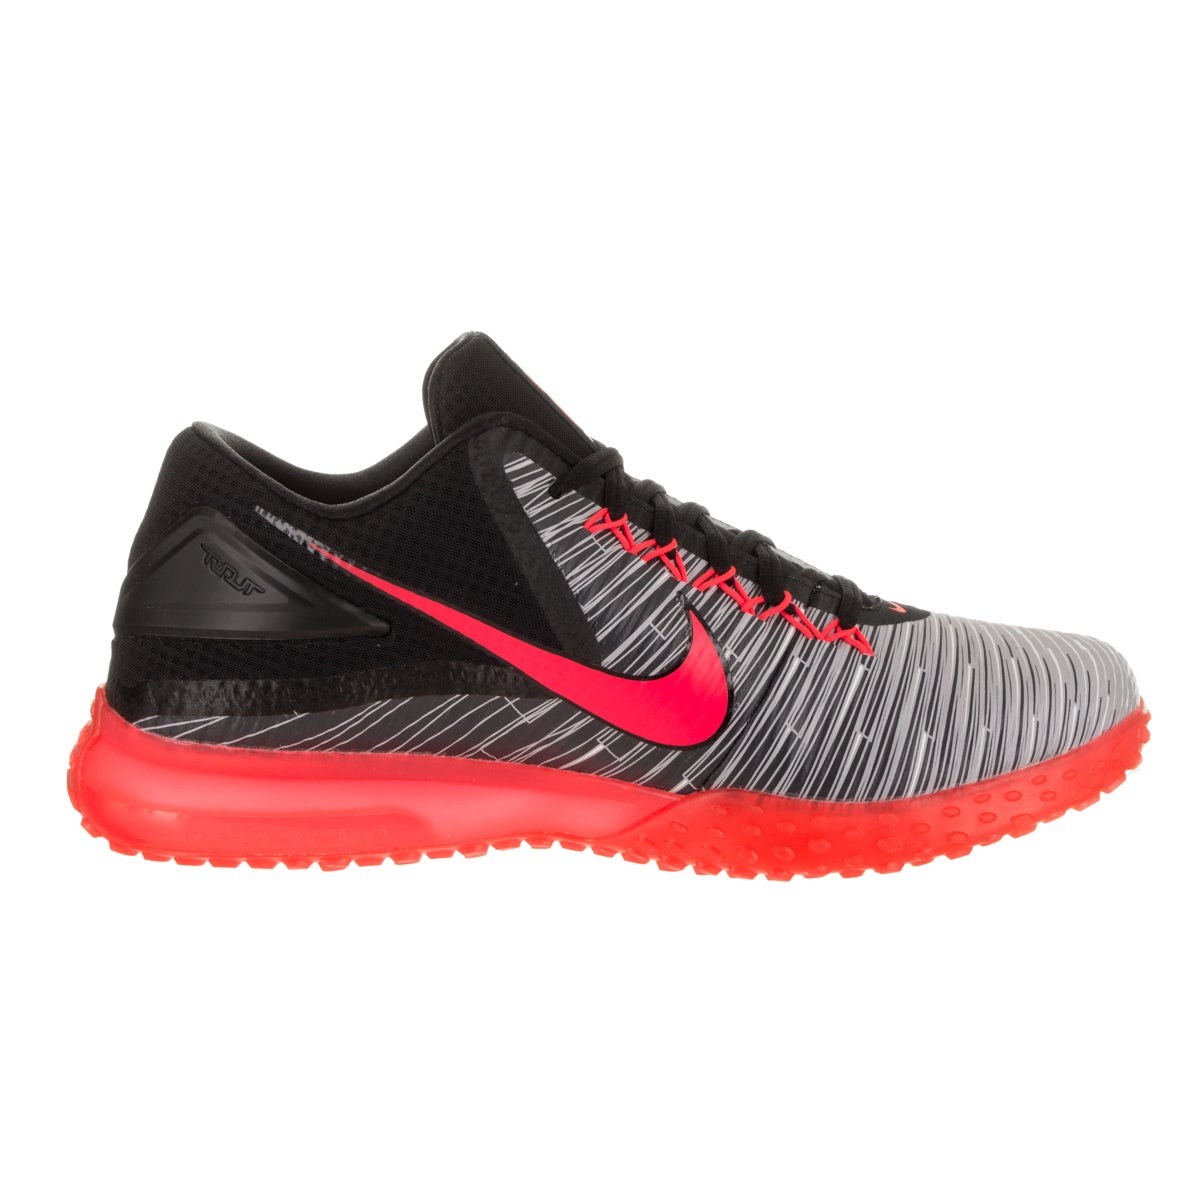 Nike Men's Trout 3 Turf Training Shoes - Free Shipping Today -  Overstock.com - 21739792